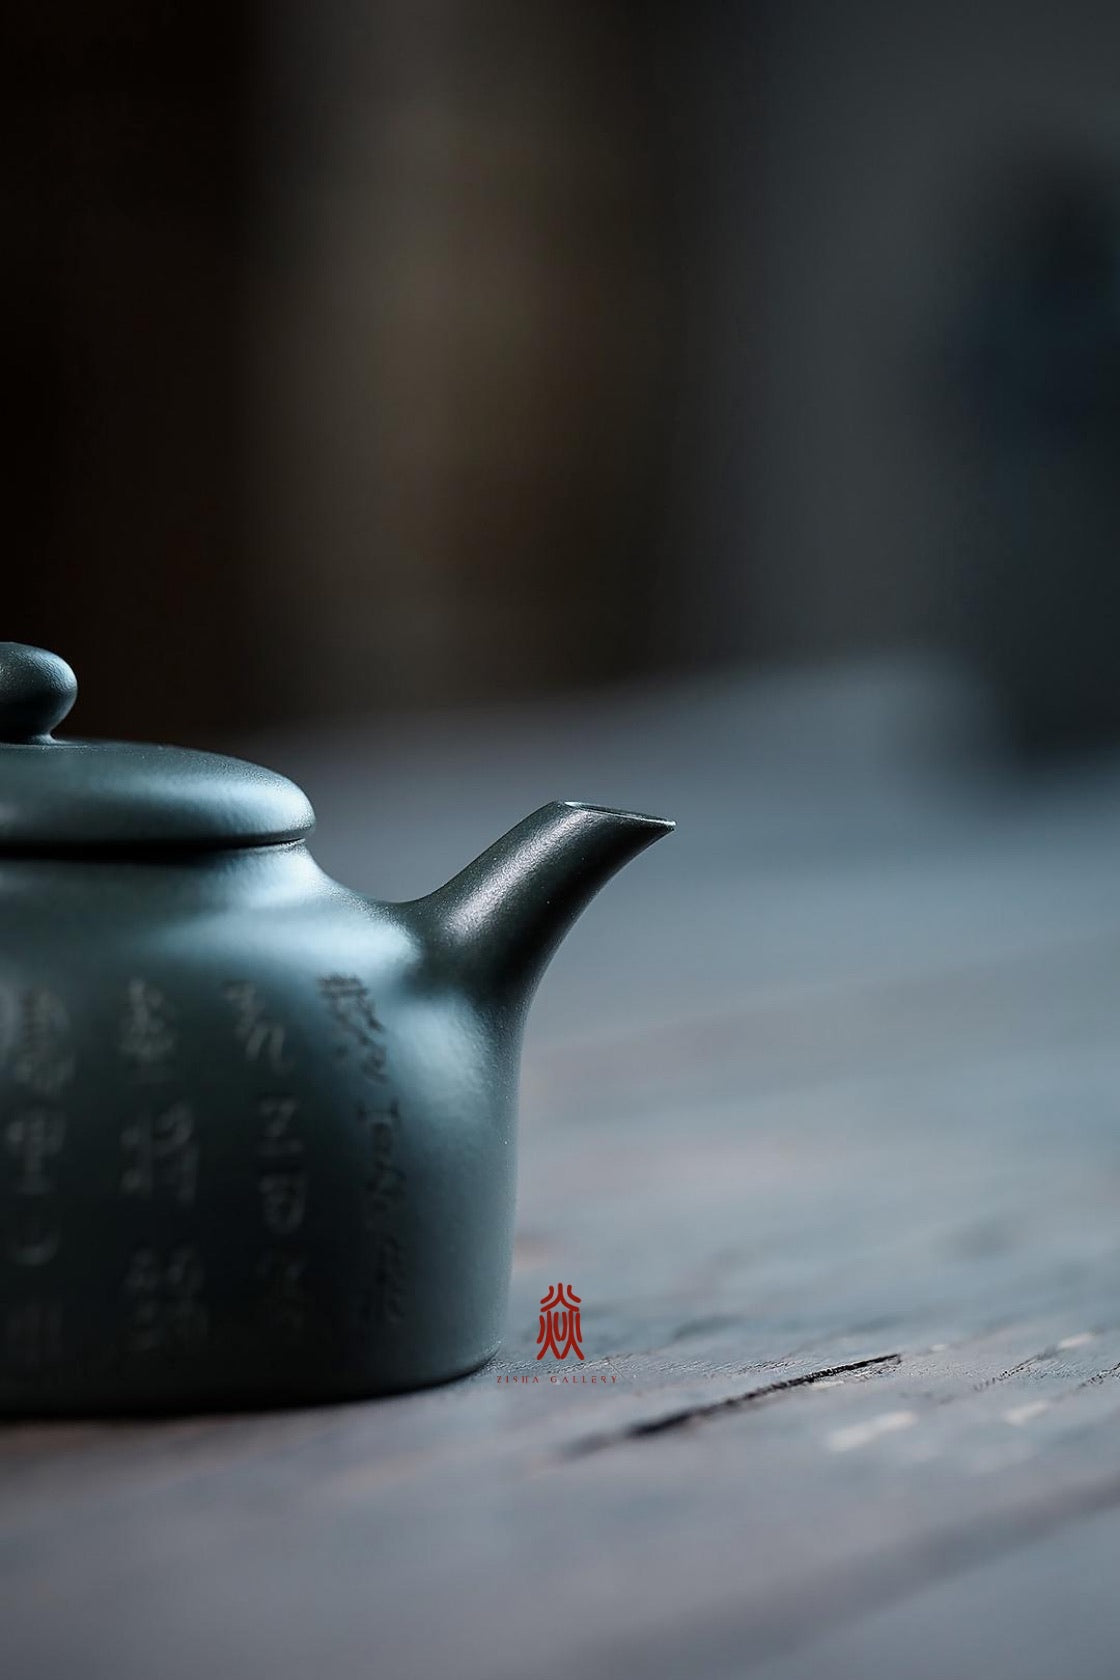 玉立壶 Yu Li Hu 200ML 沈美华 纯正民国绿 Authentic Min Guo Lüni - The Phans Yixing Zisha Teapot